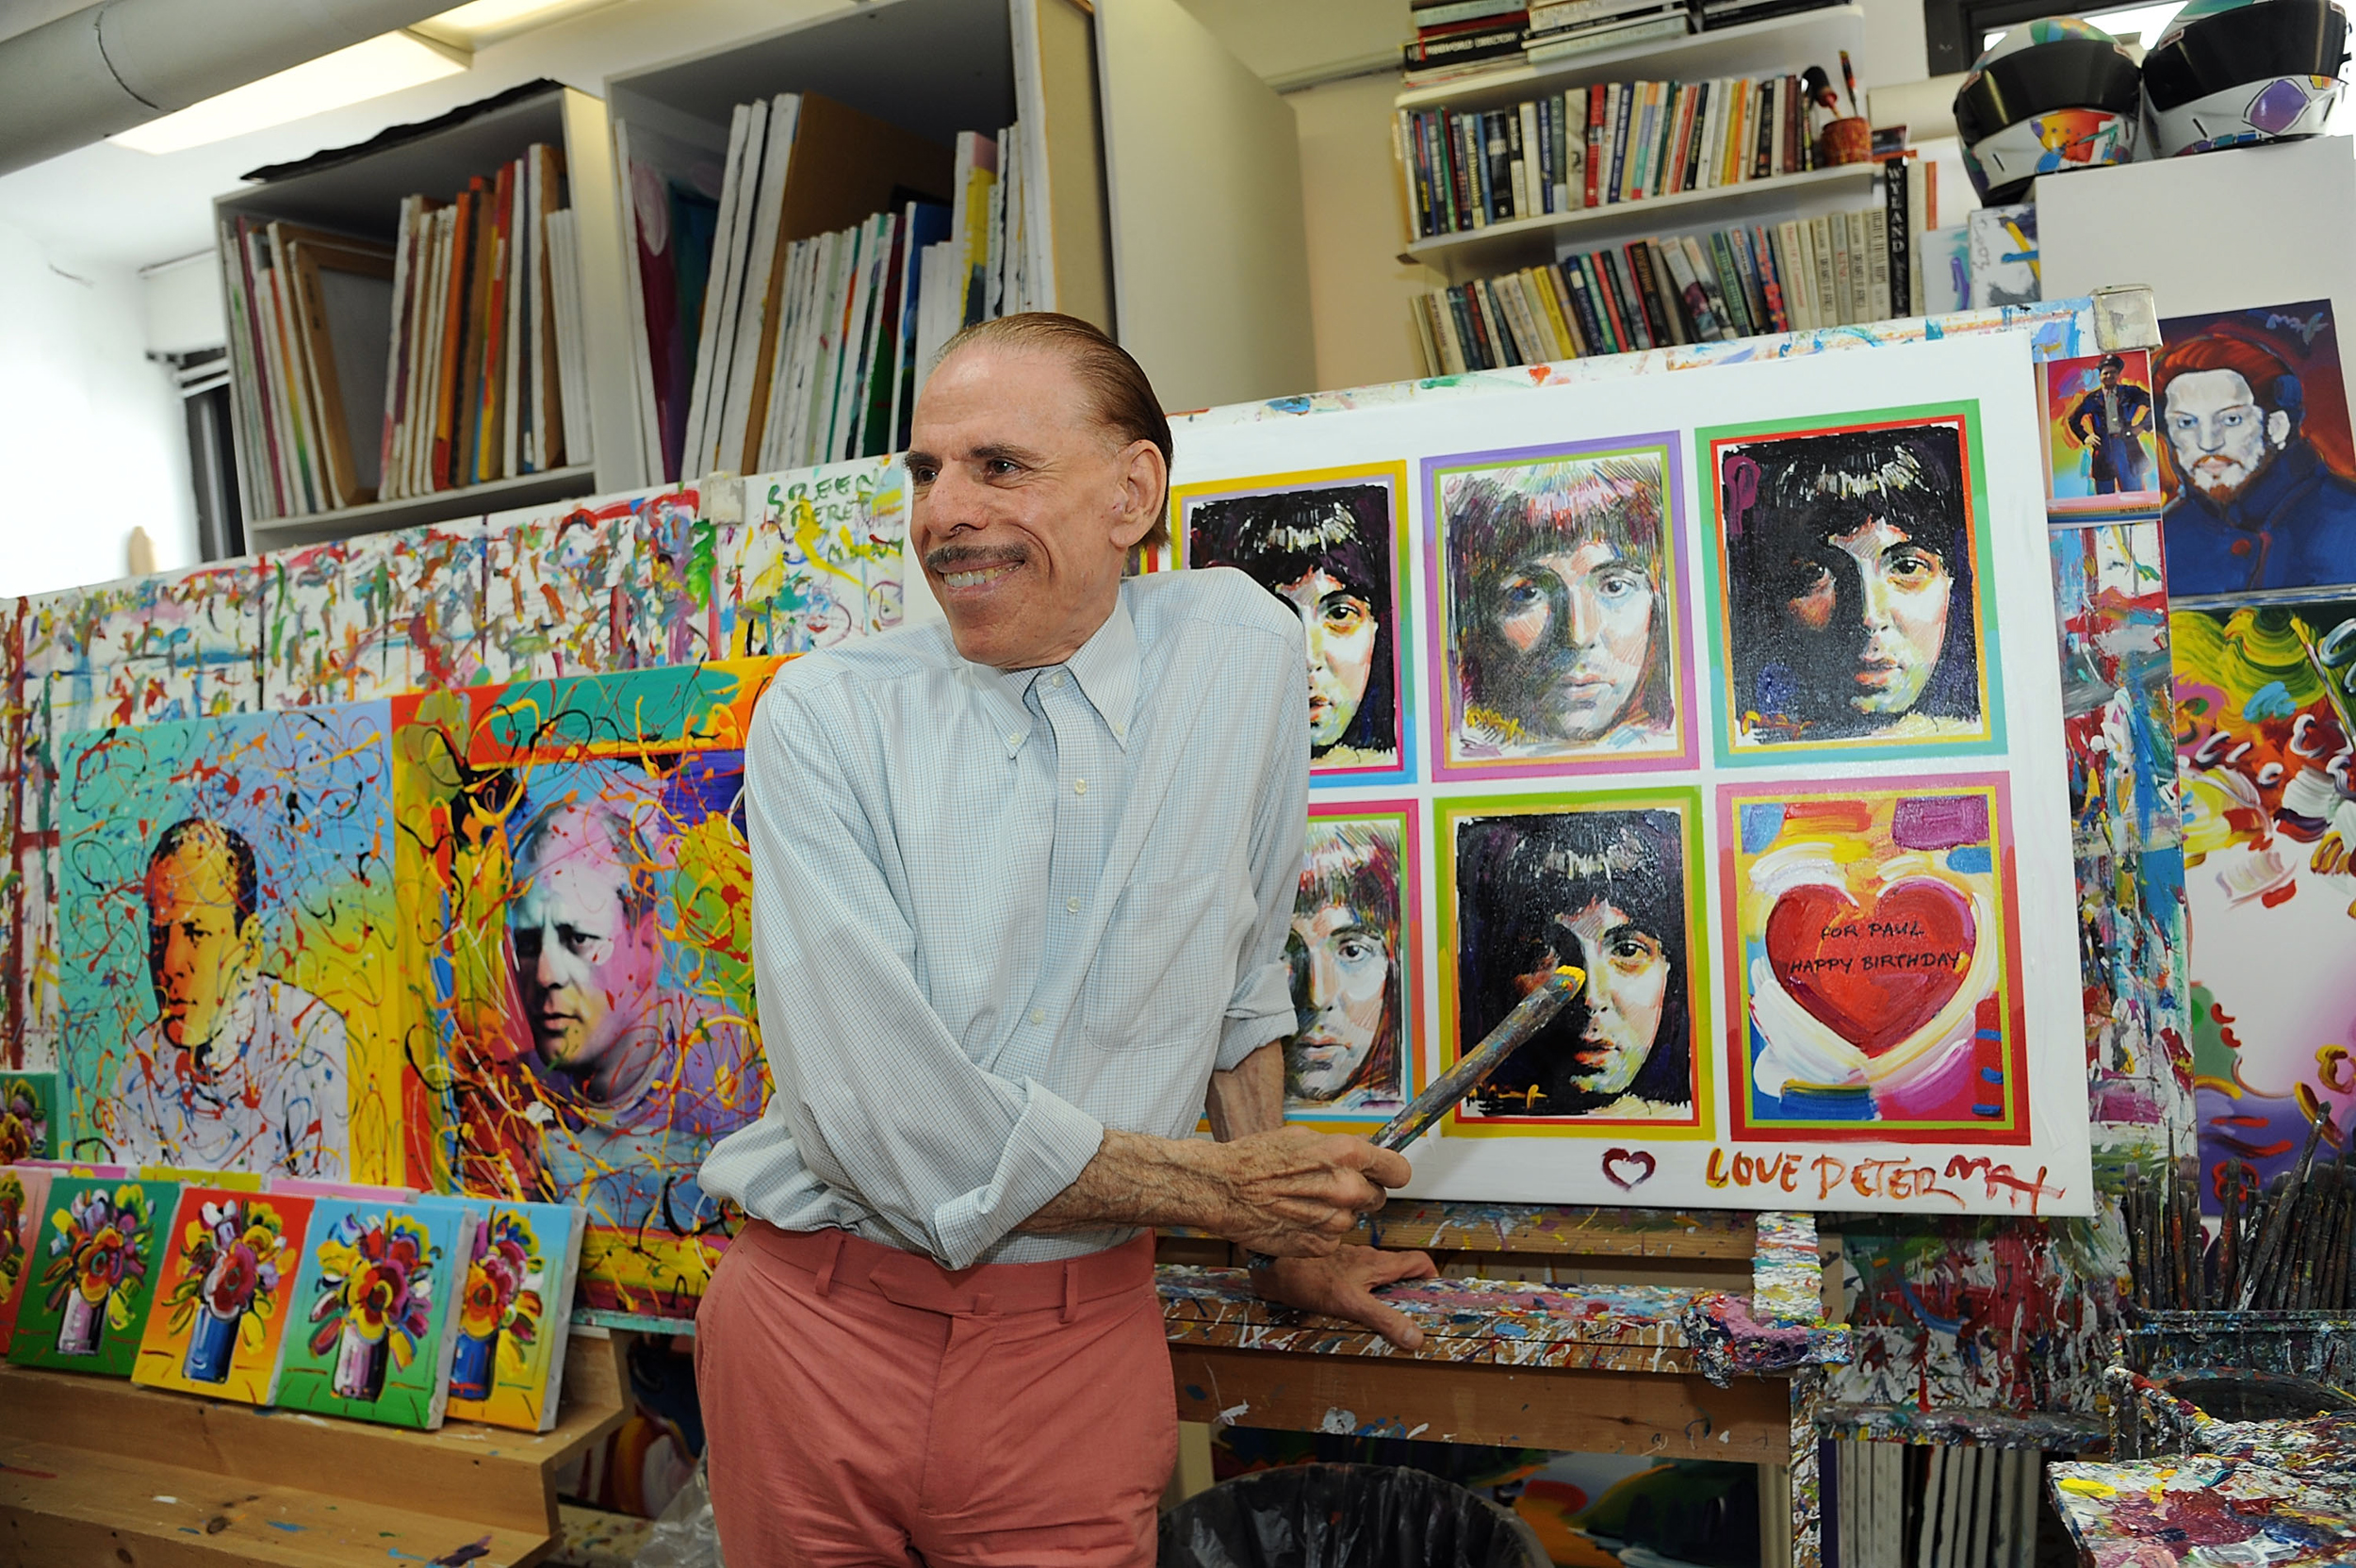 Mary Max Wife Of Psychedelic Artist Peter Max Found Dead By Suicide In New York Apartment